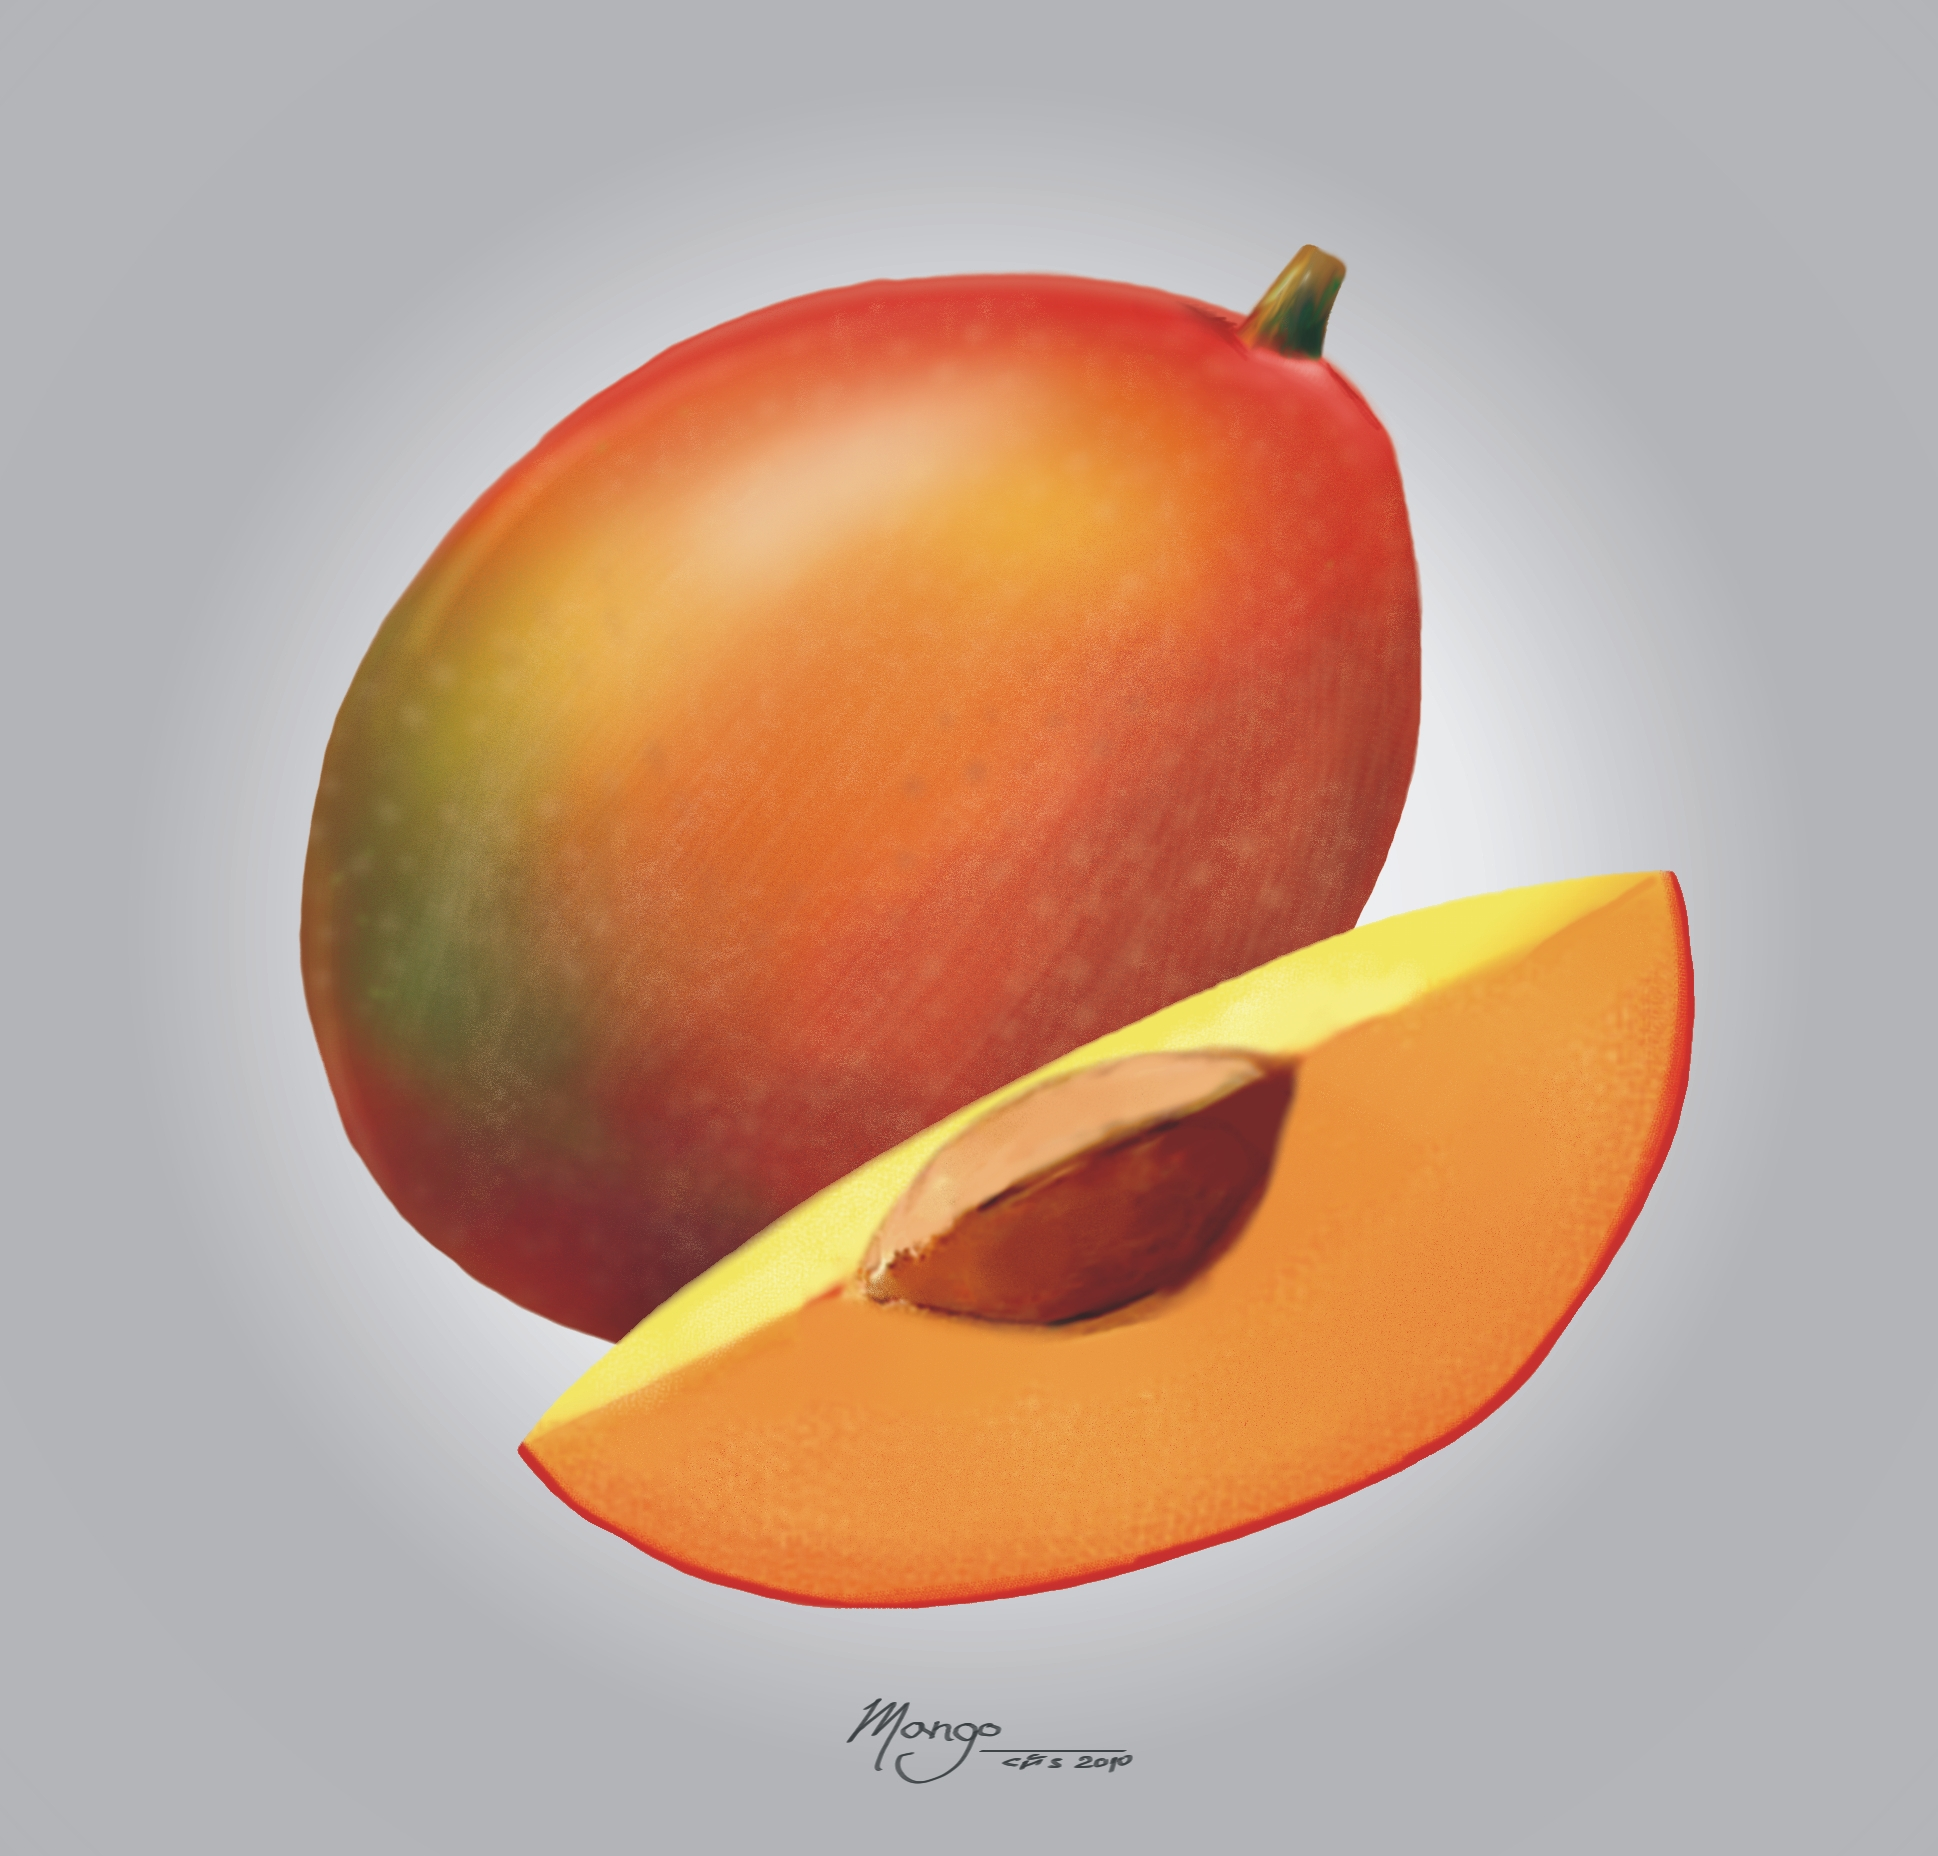 ART_digital_mango_druk